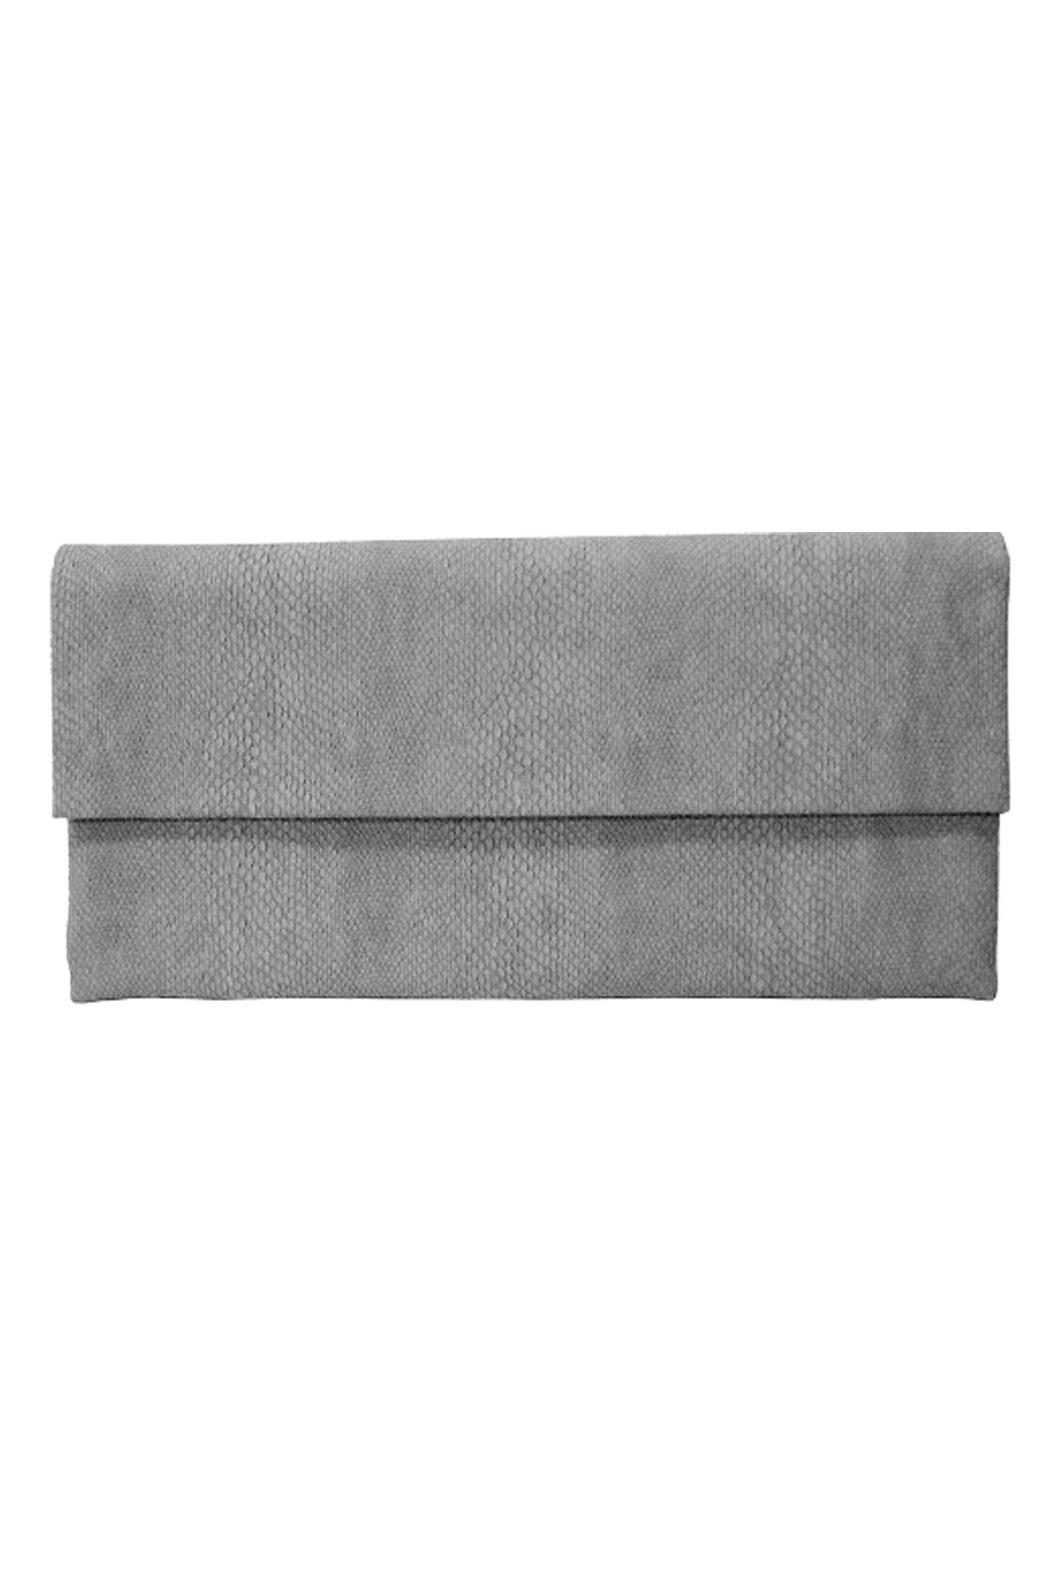 Wild Lilies Jewelry  Gray Snakeskin Clutch - Front Cropped Image